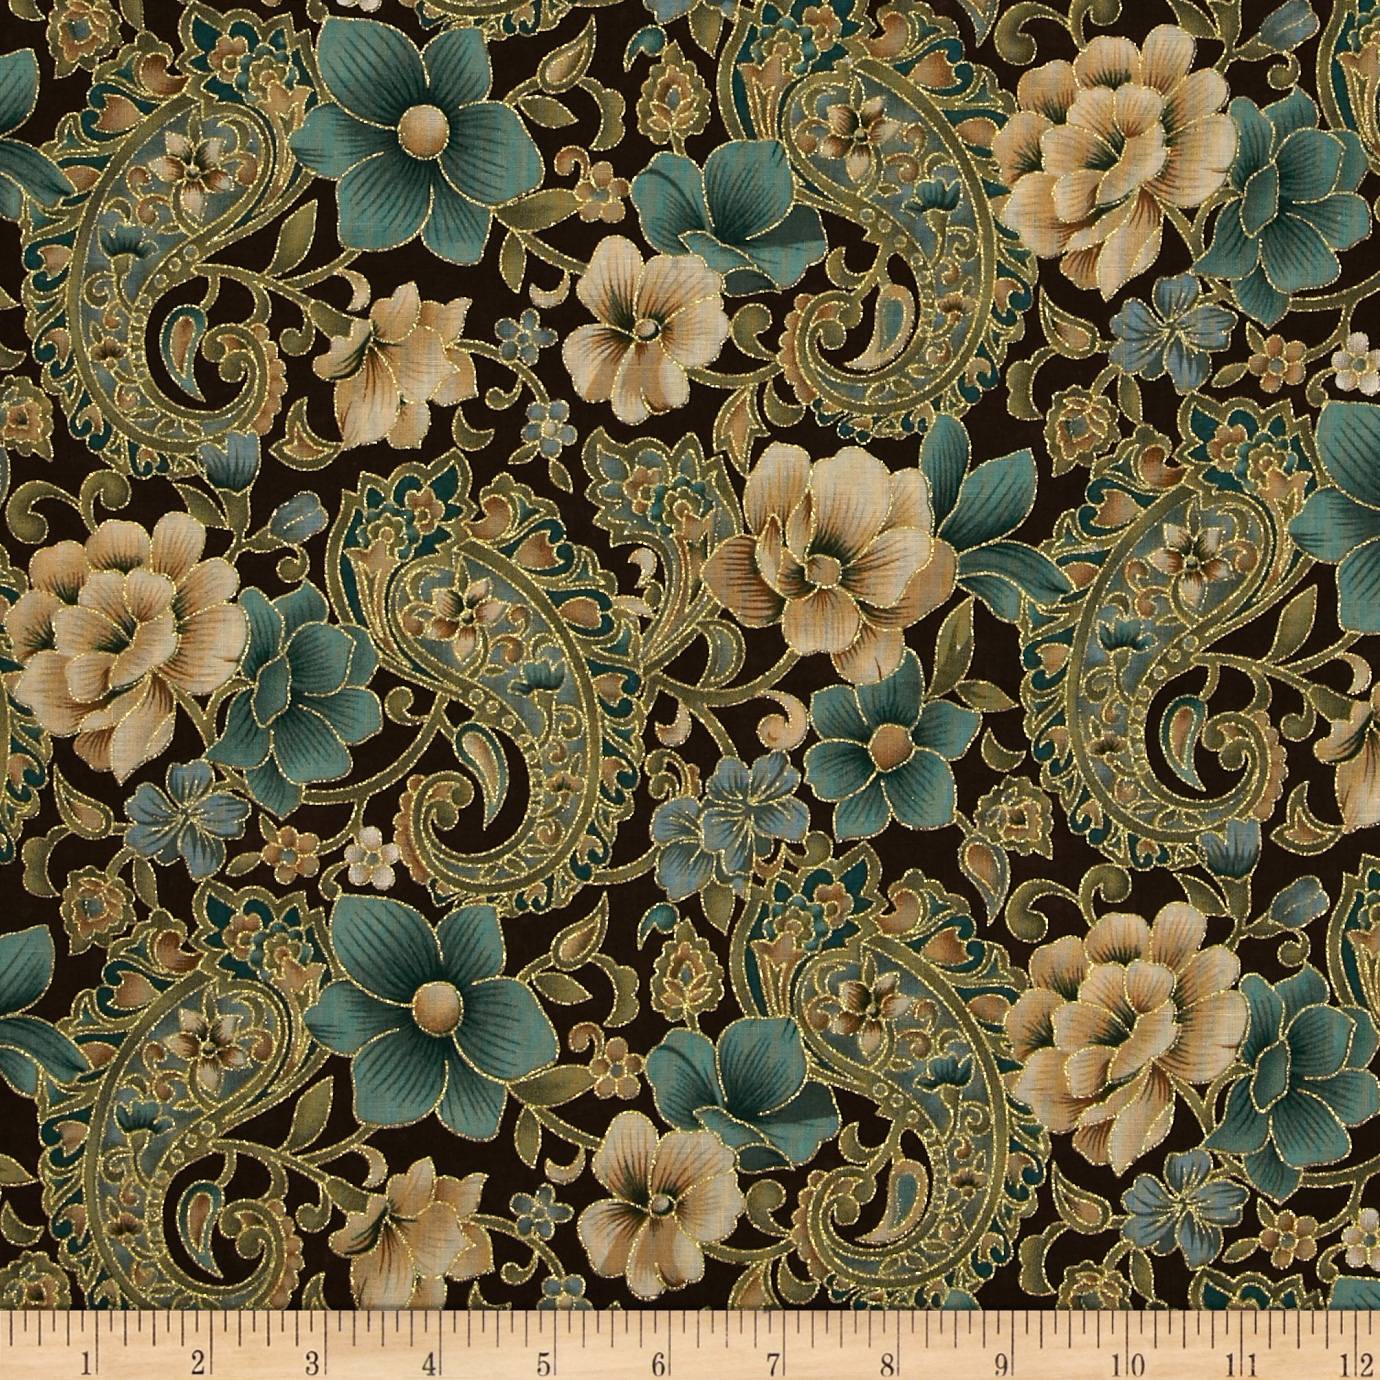 Marrakech Metallic Paisley Floral Brown Fabric by Fabric Traditions in USA